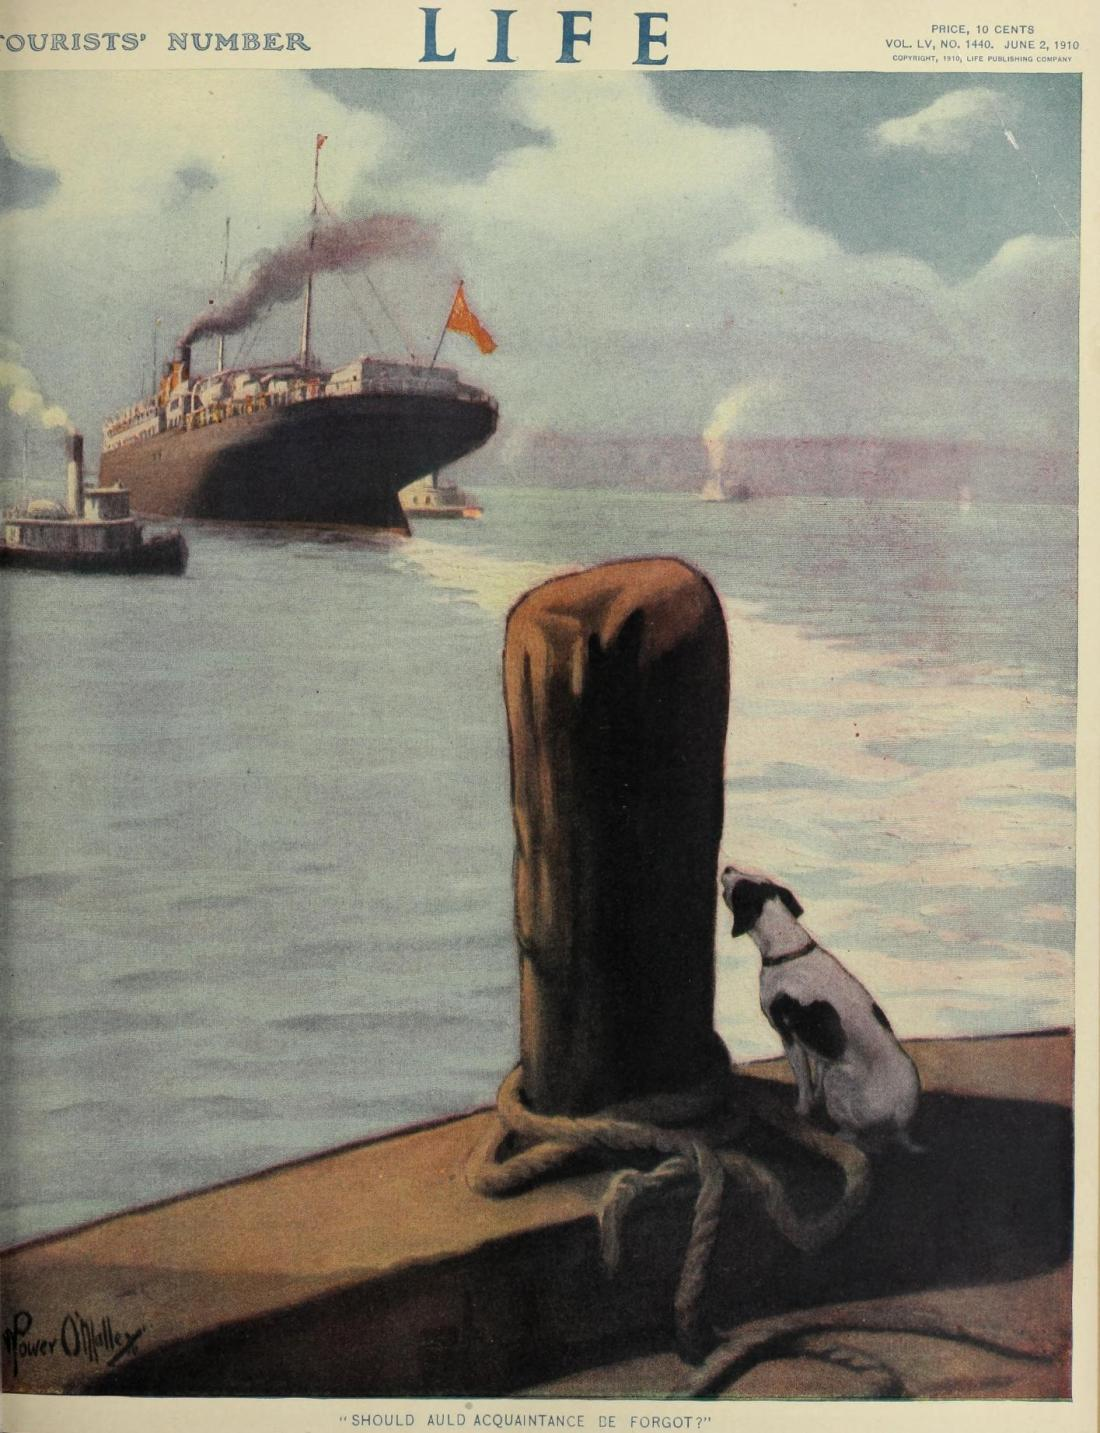 """""""Should Auld Acquaintance be Forgot?"""" Cover for Life magazine. June 2, 1910."""